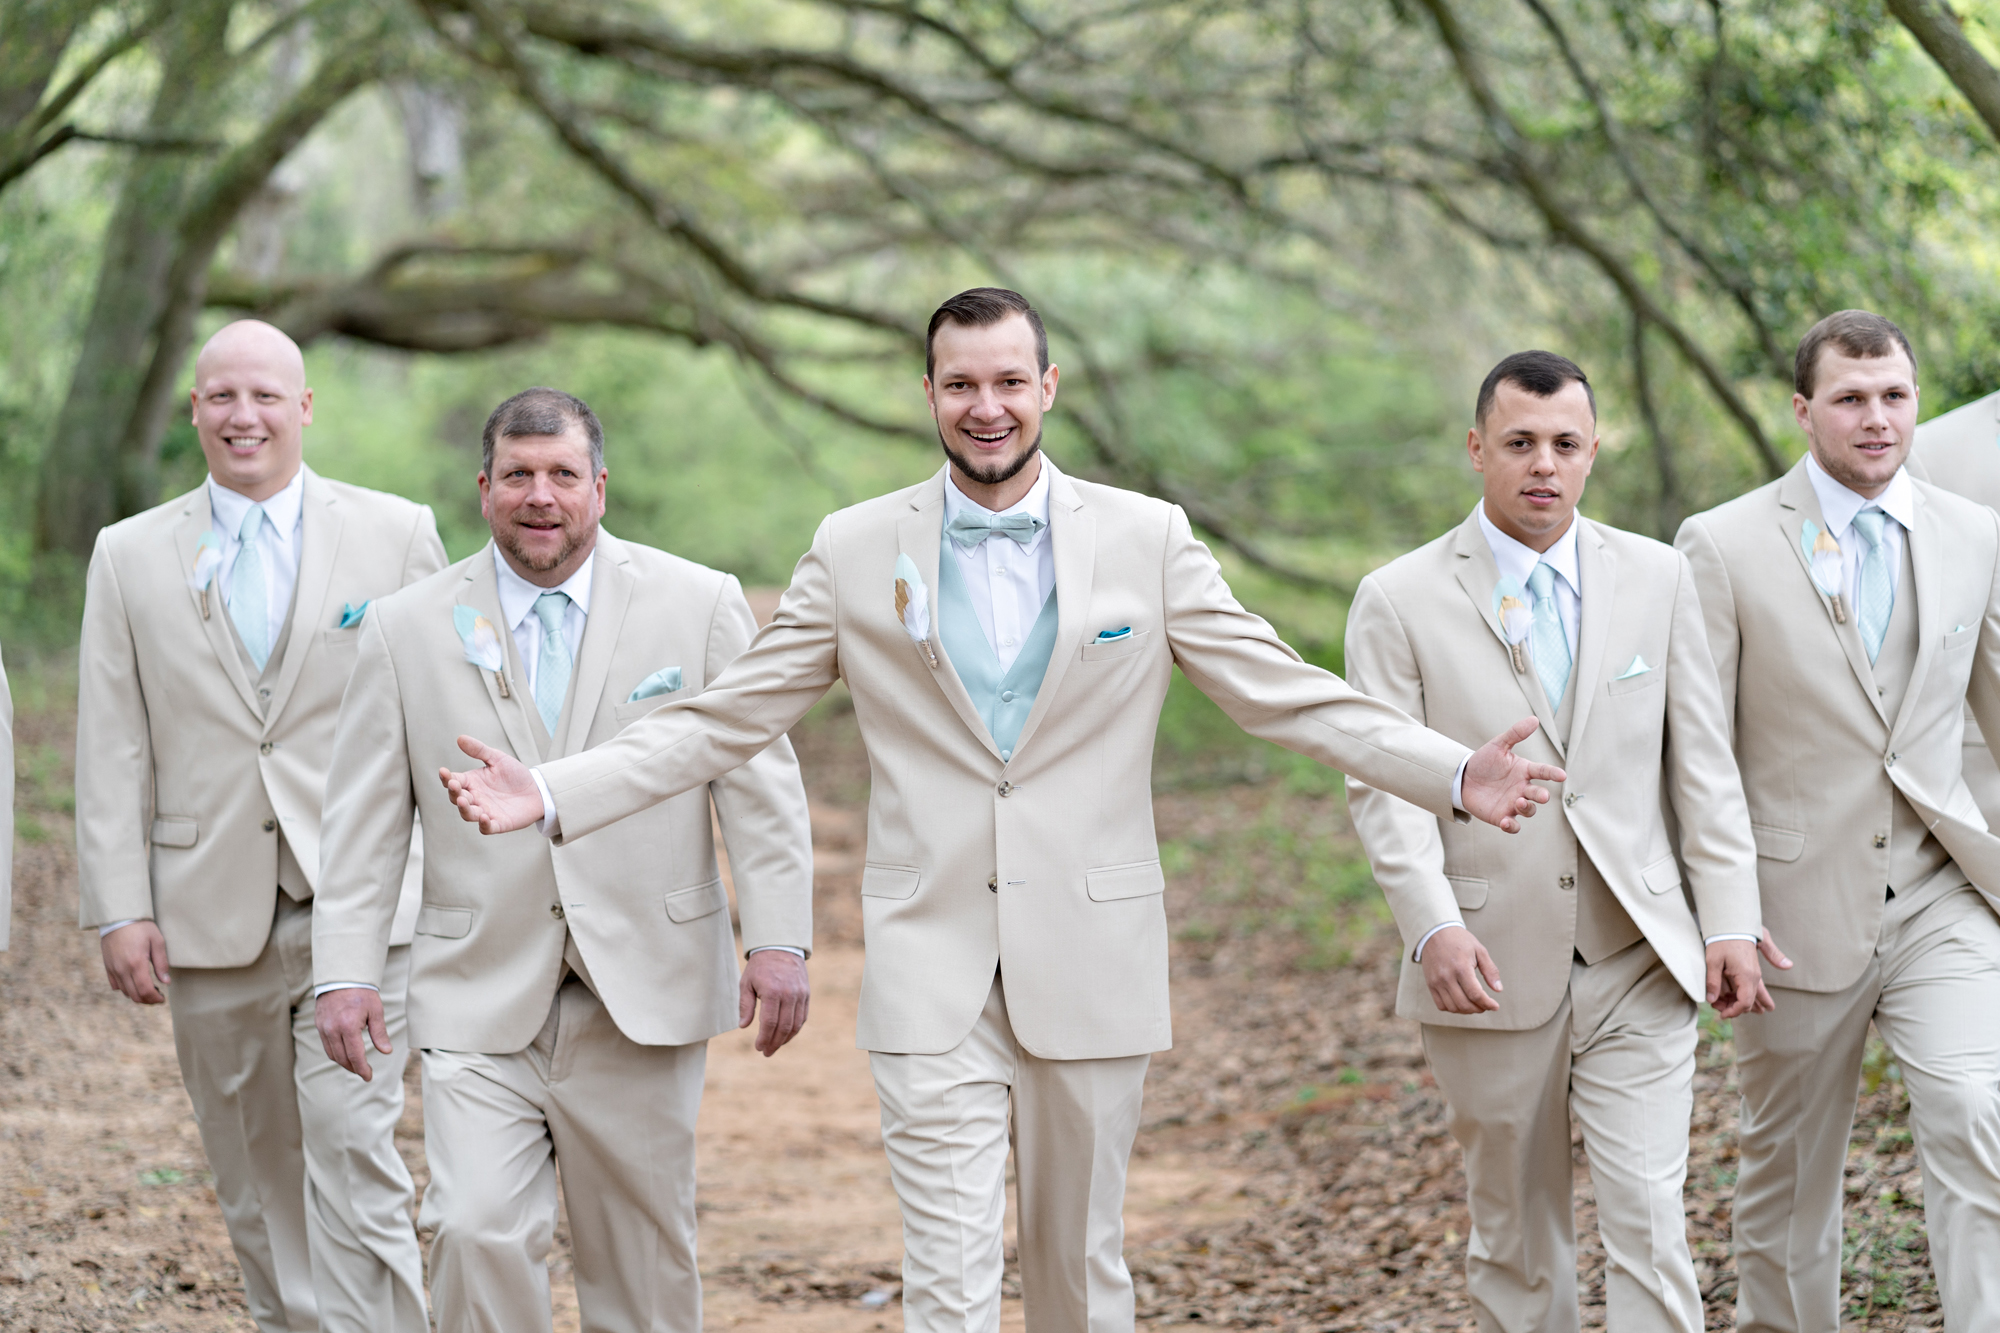 Fairhope-Alabama-Wedding-Photographers-Nick-Drollette-Photography-124.jpg